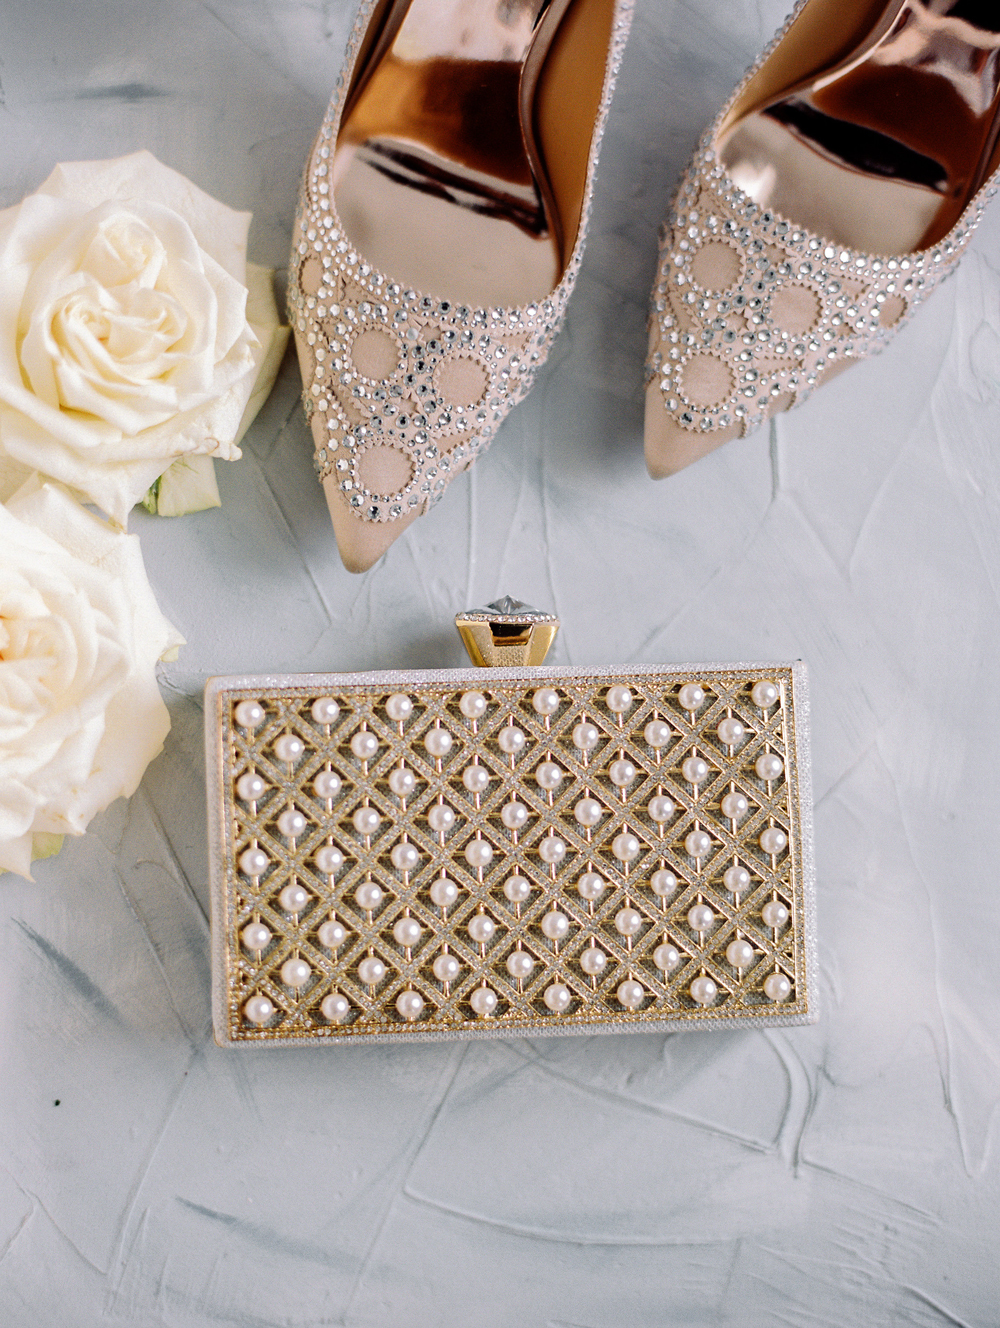 toffee toned crystal pumps with pearl embellished clutch